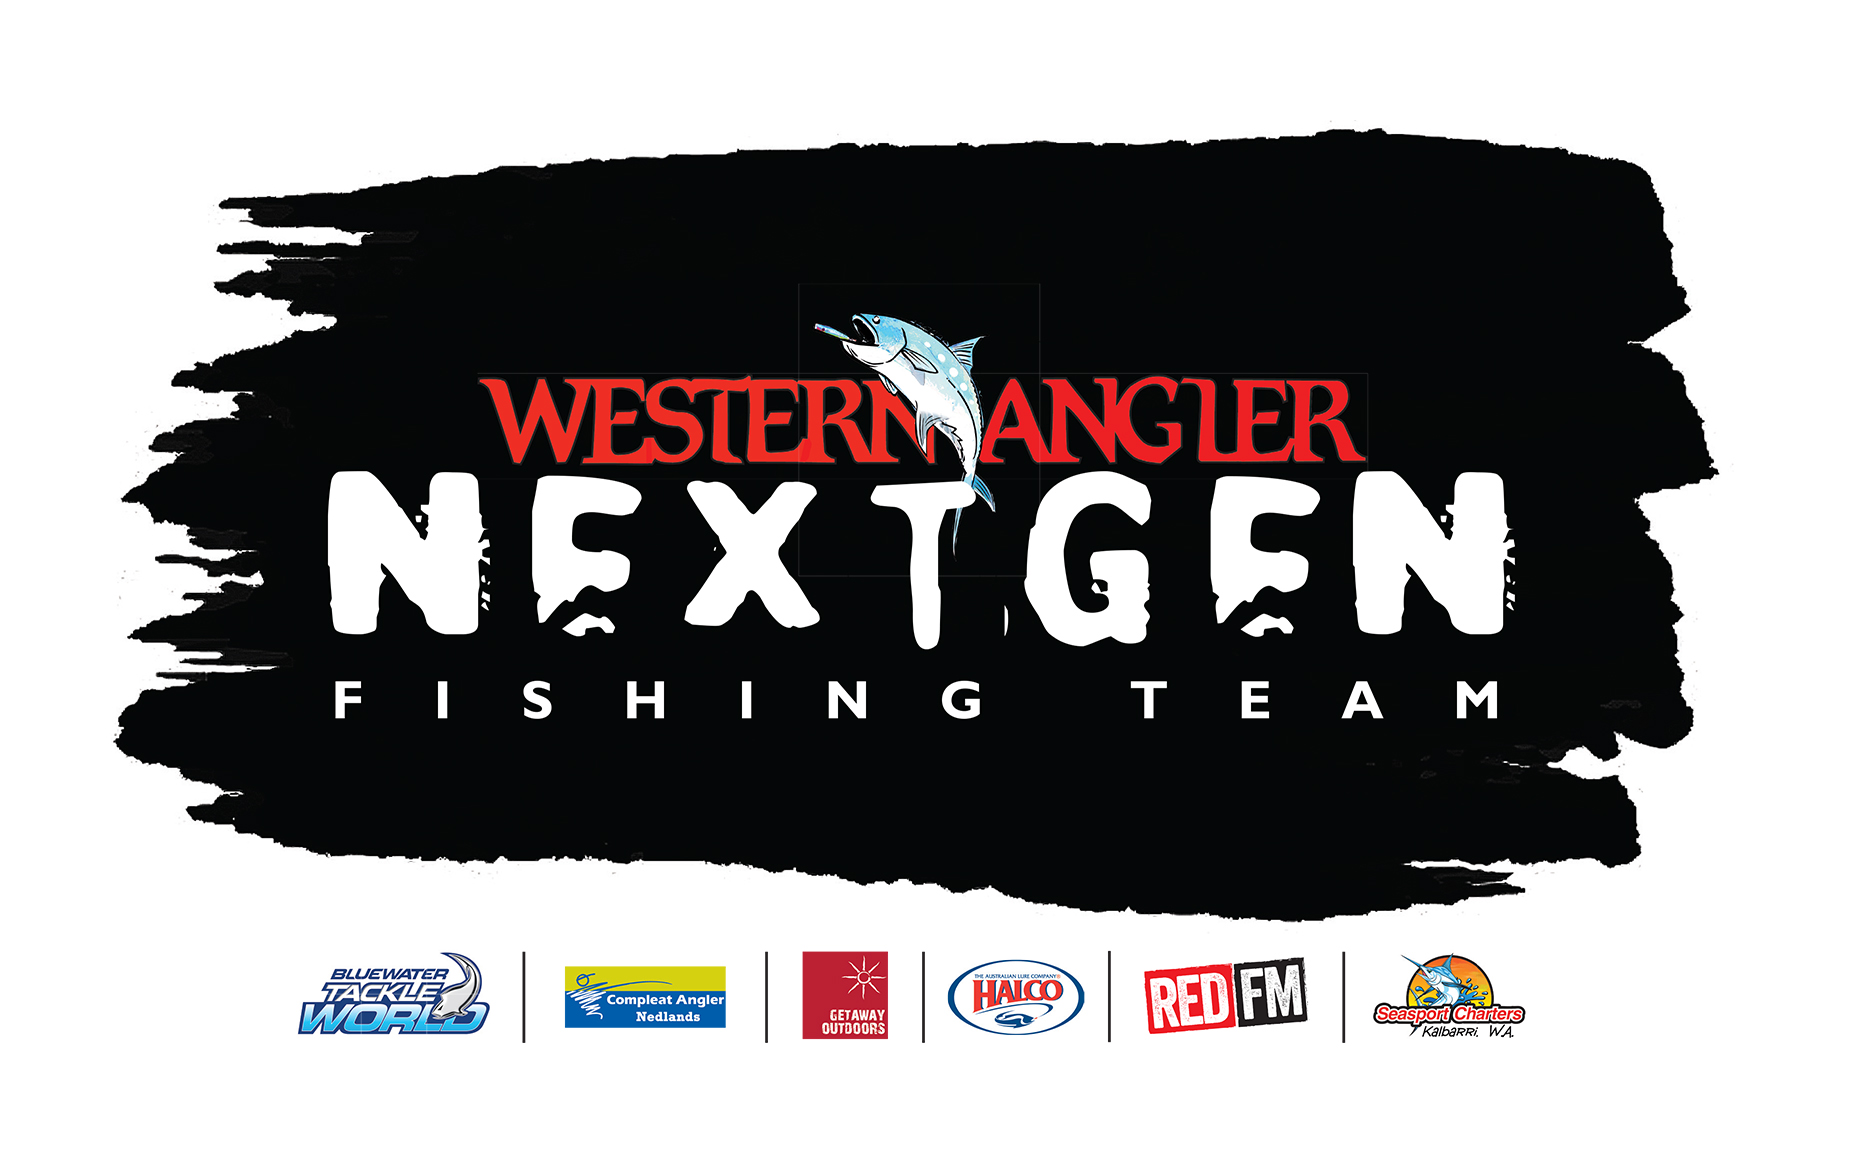 NextGen Fishing Team